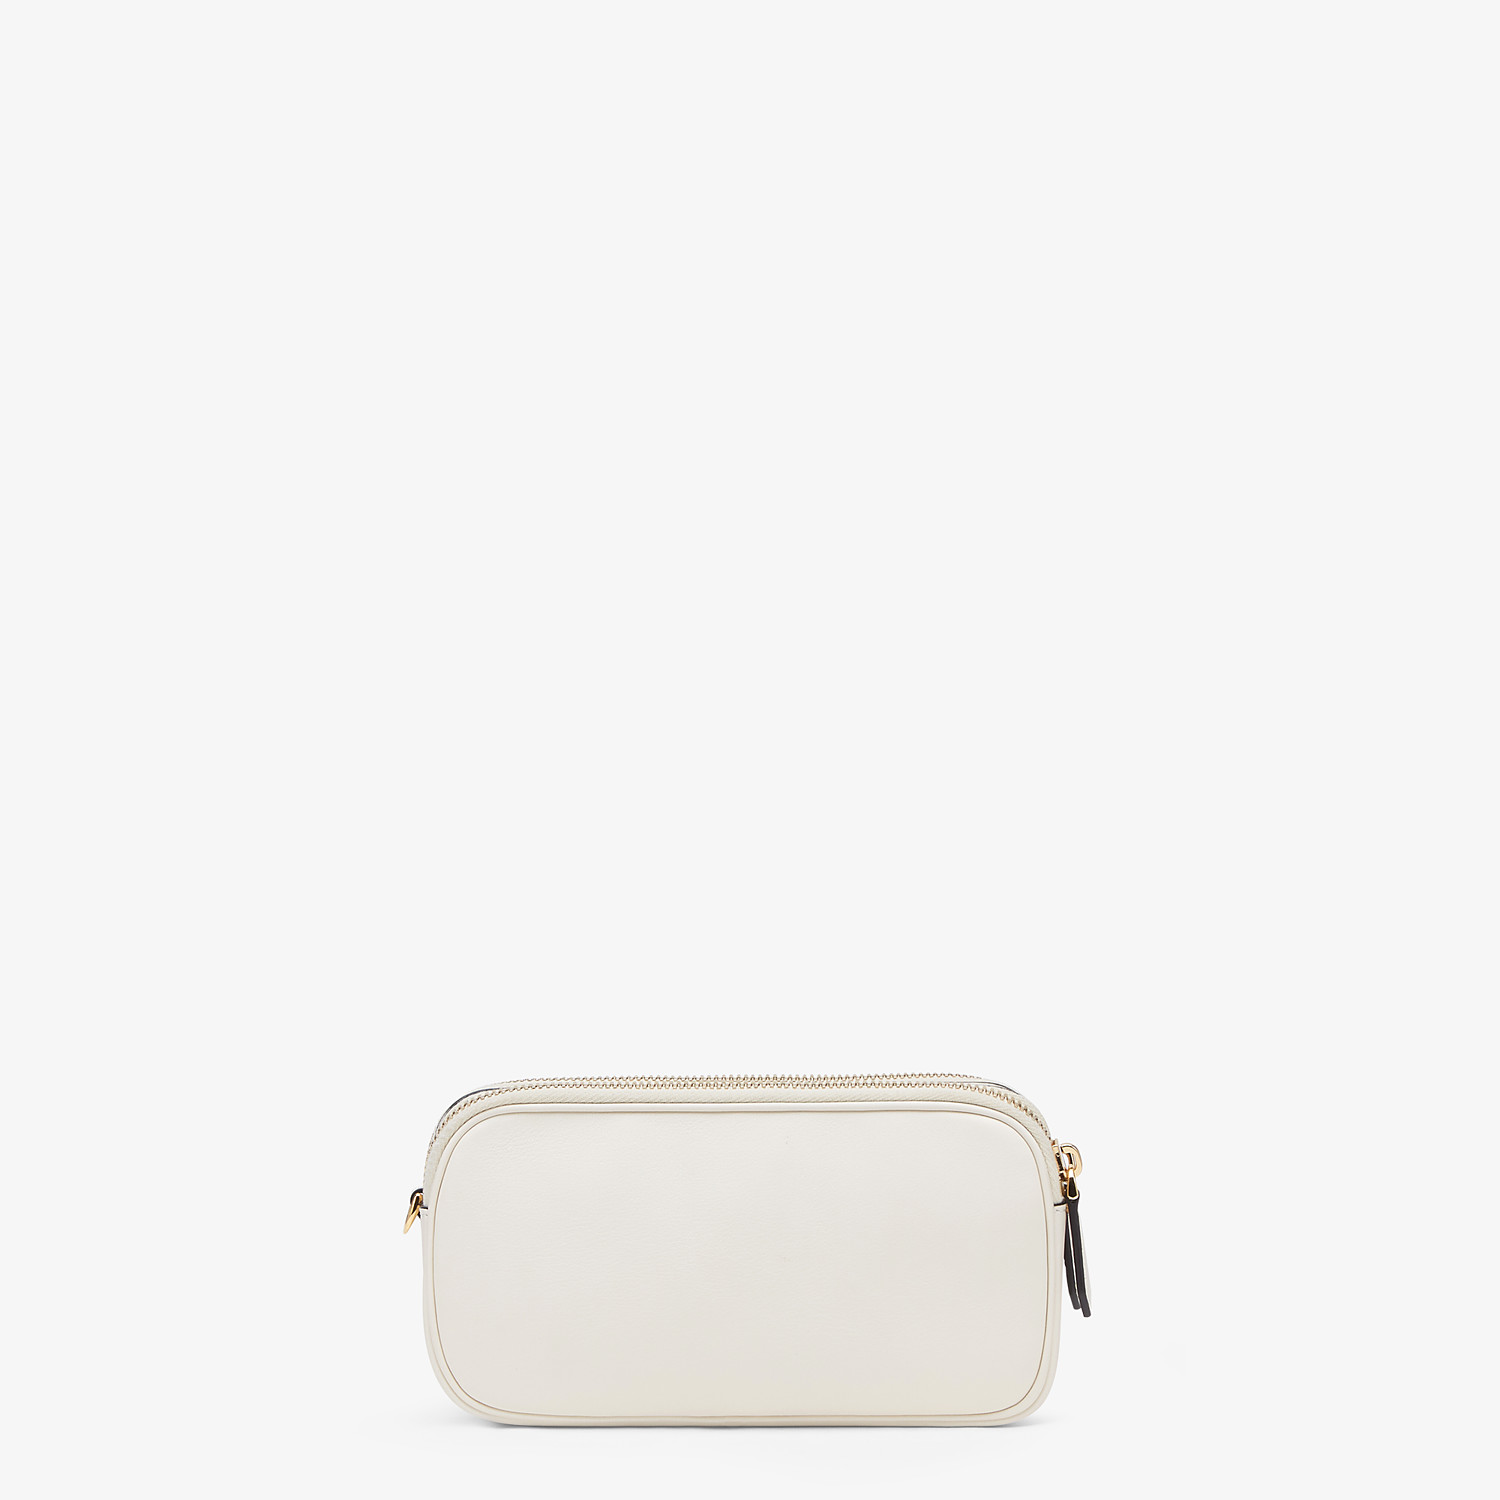 FENDI EASY 2 BAGUETTE - White leather mini bag - view 4 detail